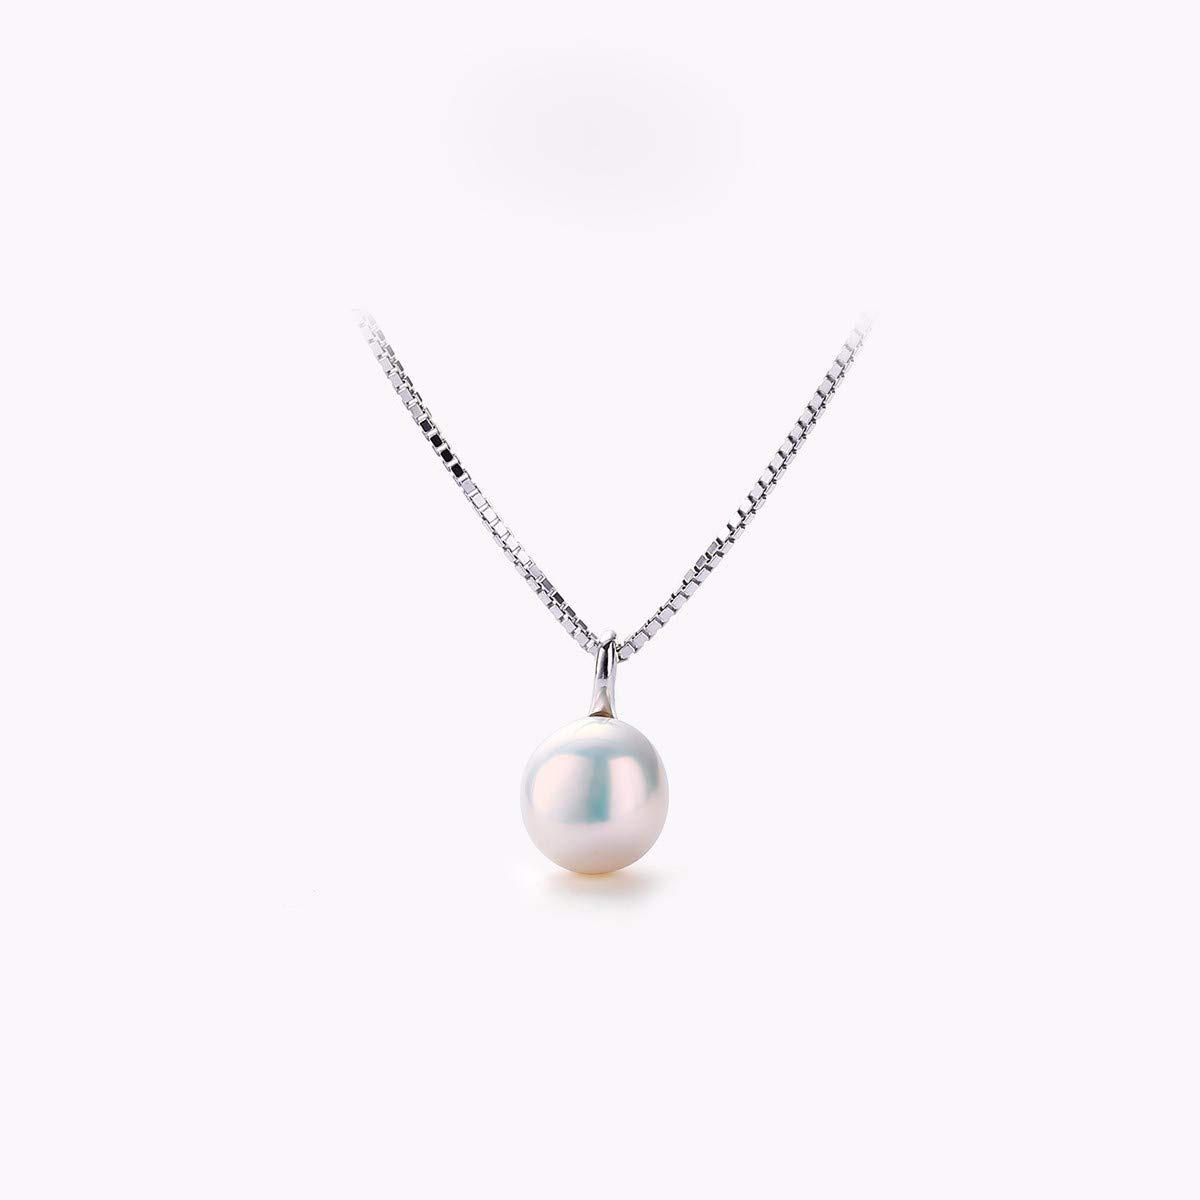 Silvery KUNQ gift Natural Freshwater Pearl Necklace Lady Temperament Lady 925 Silver Clavicle Chain Simple Near Circle Pendant